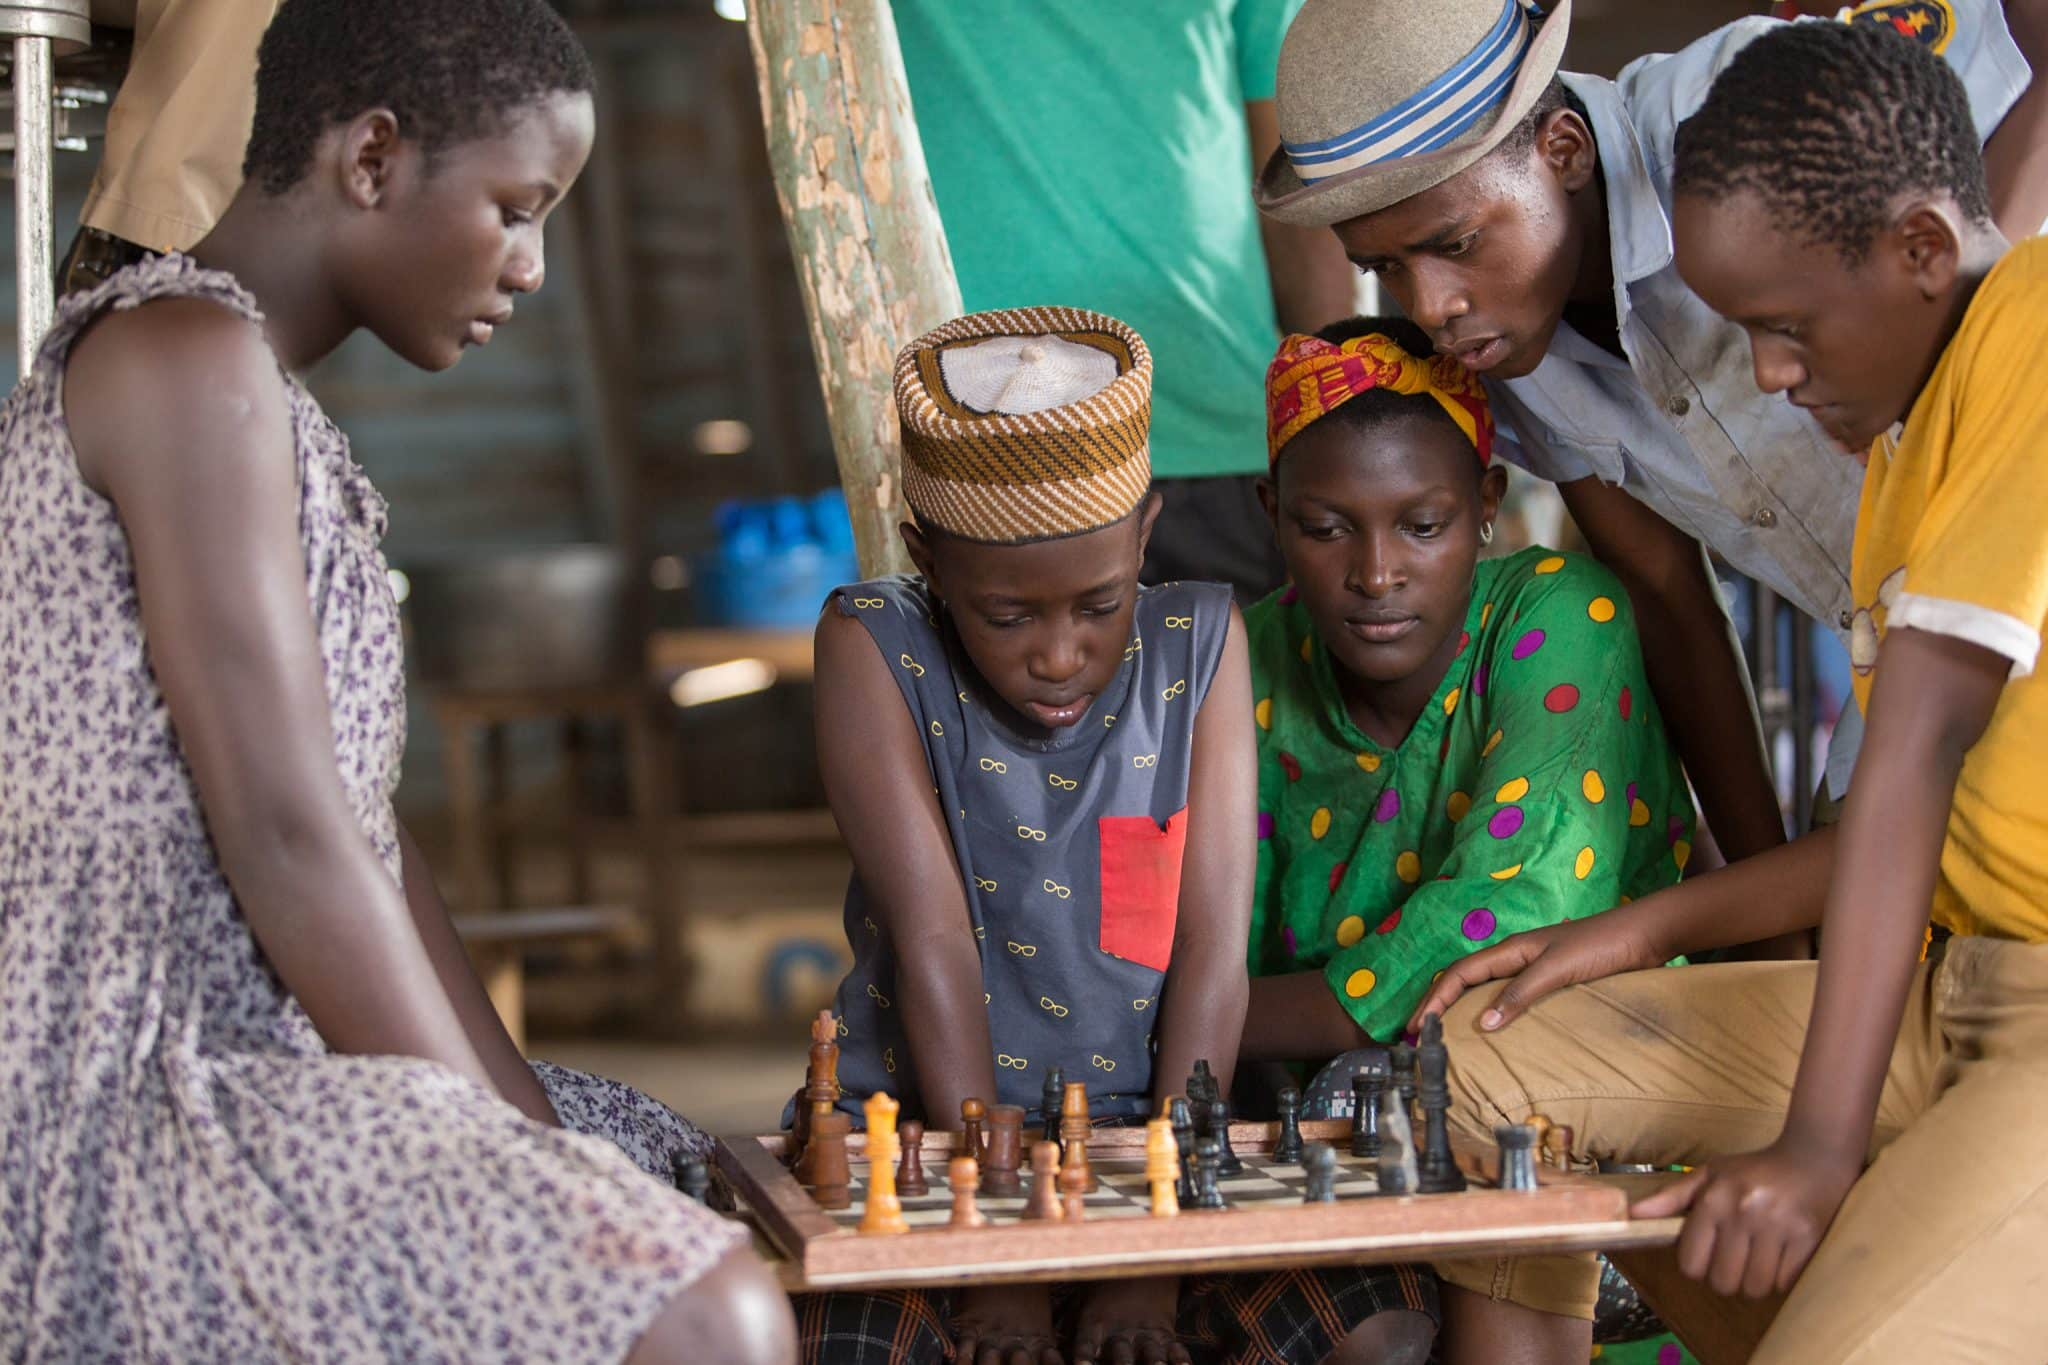 True-Life Champion From Disney's Upcoming QUEEN OF KATWE!!! #QueenOfKatwe | ThisNThatwithOlivia.com